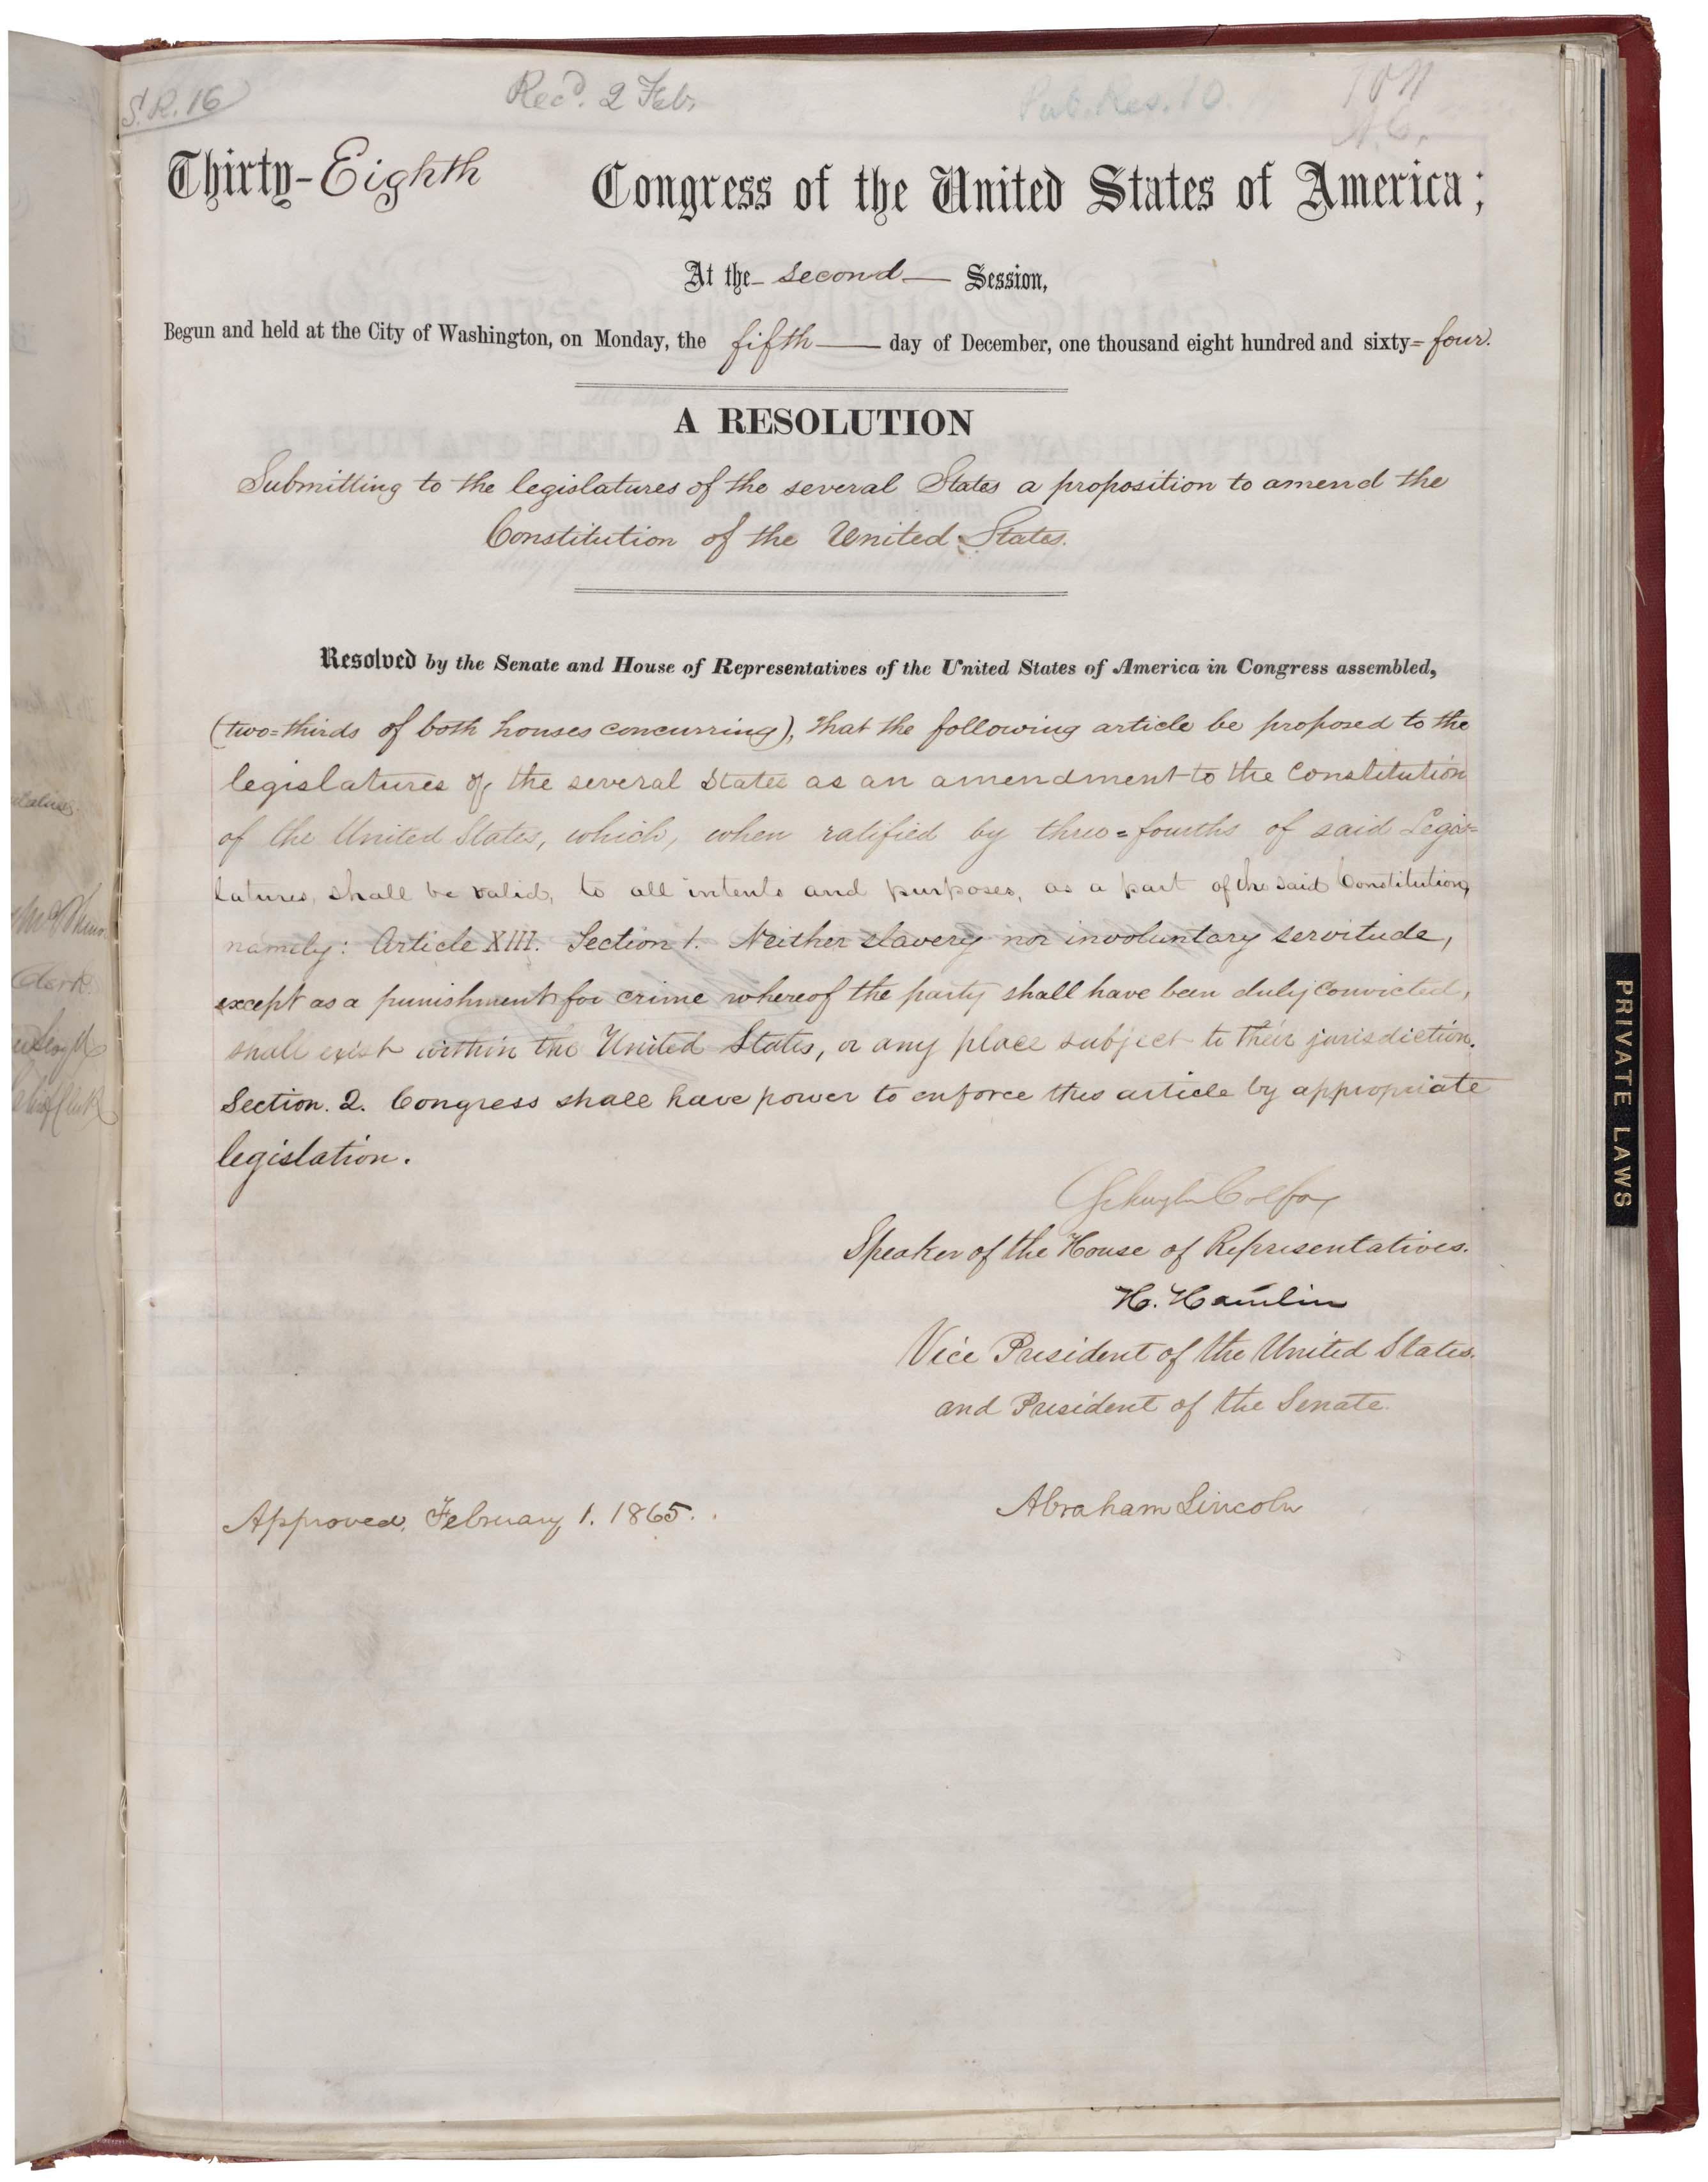 Amendment XIII in the National Archives, bearing the signature of Abraham Lincoln